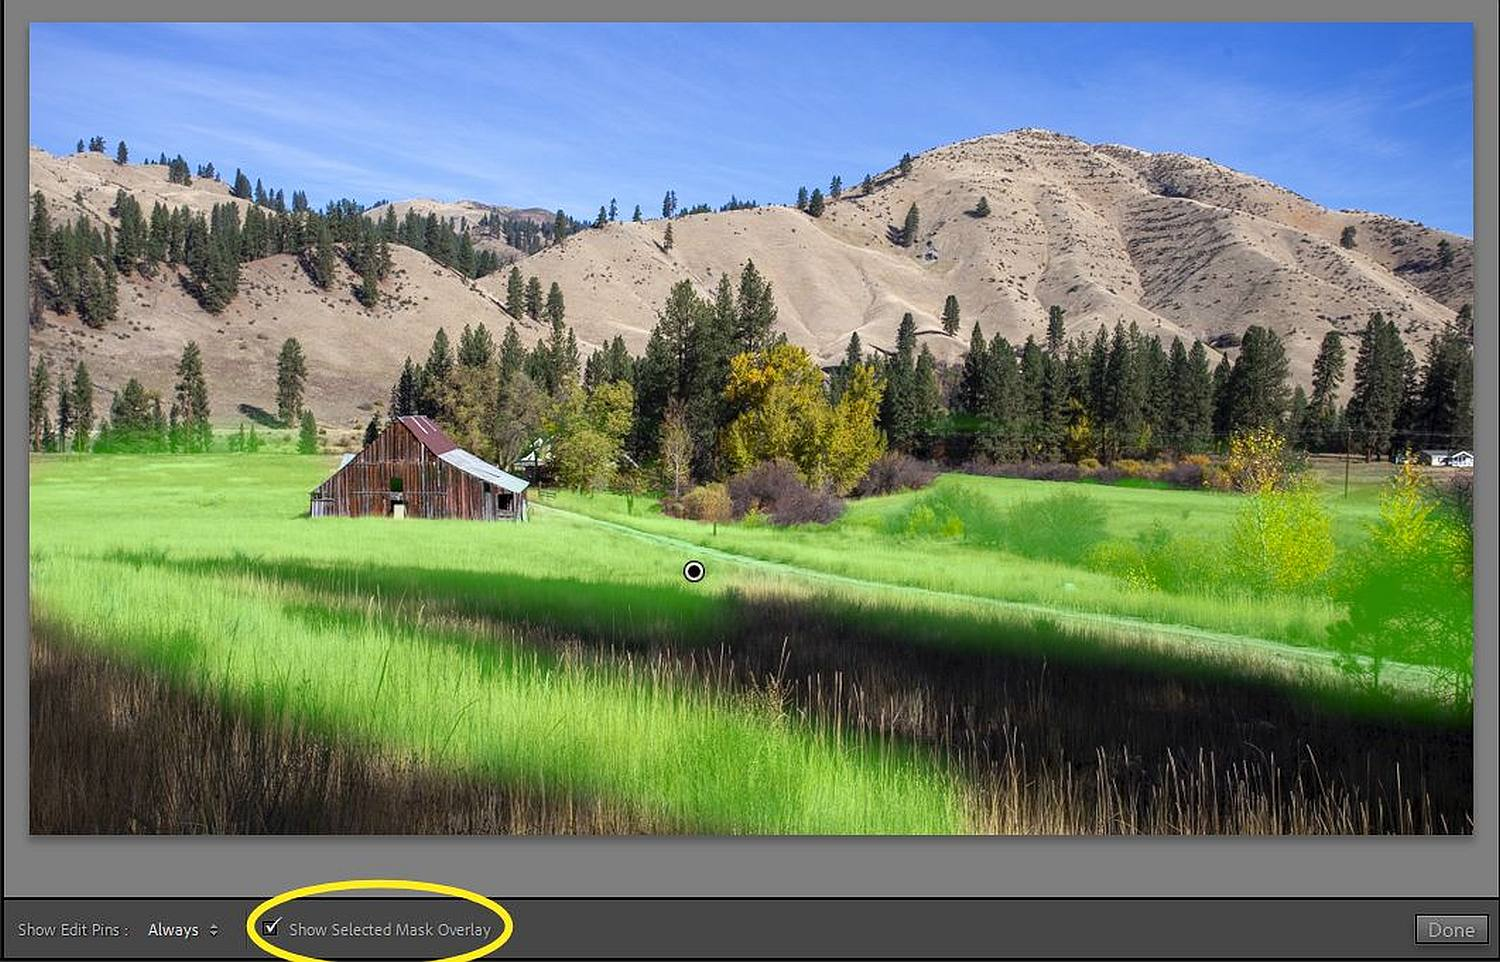 the mask overlay in Lightroom